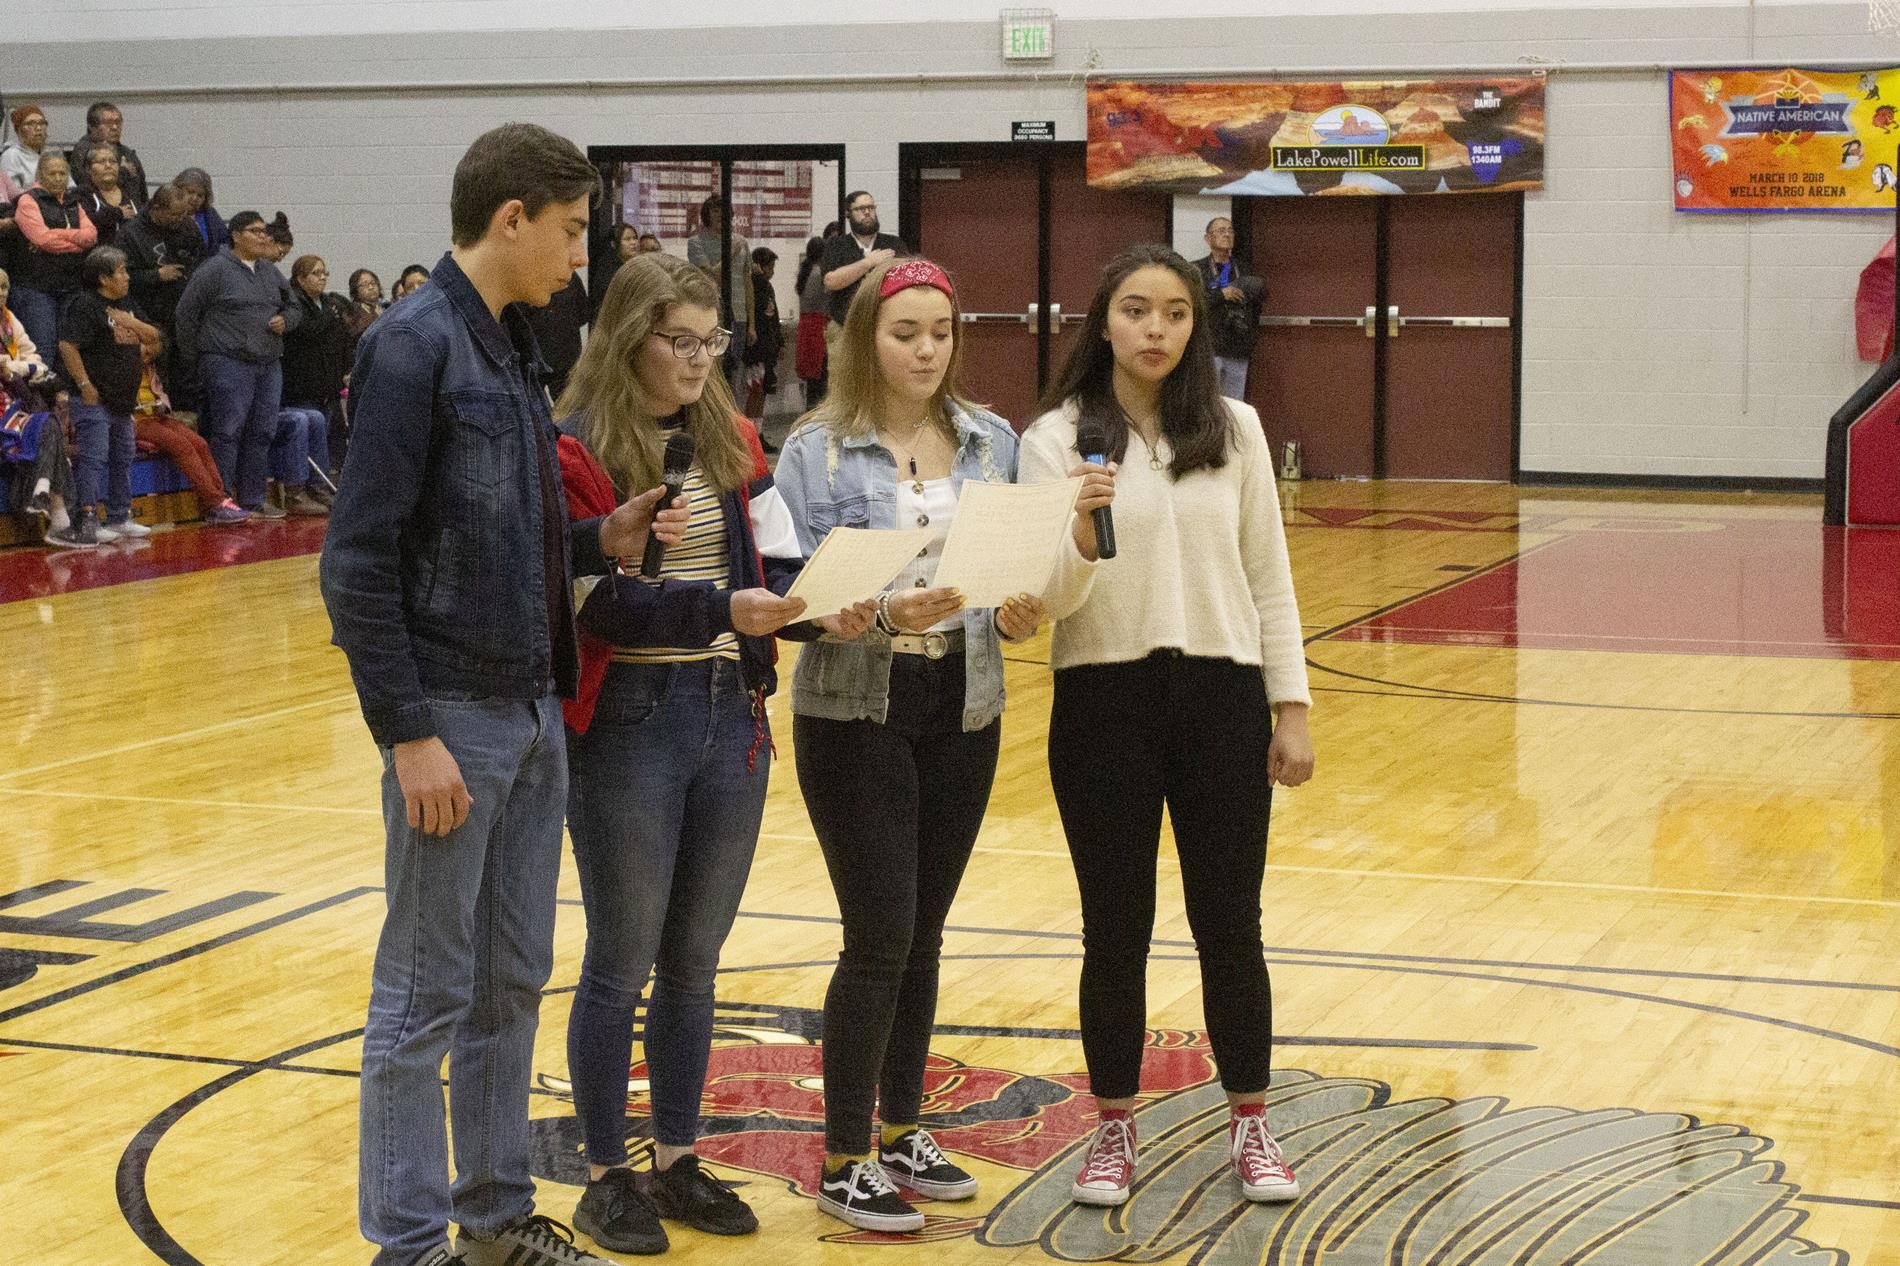 A capella group singing